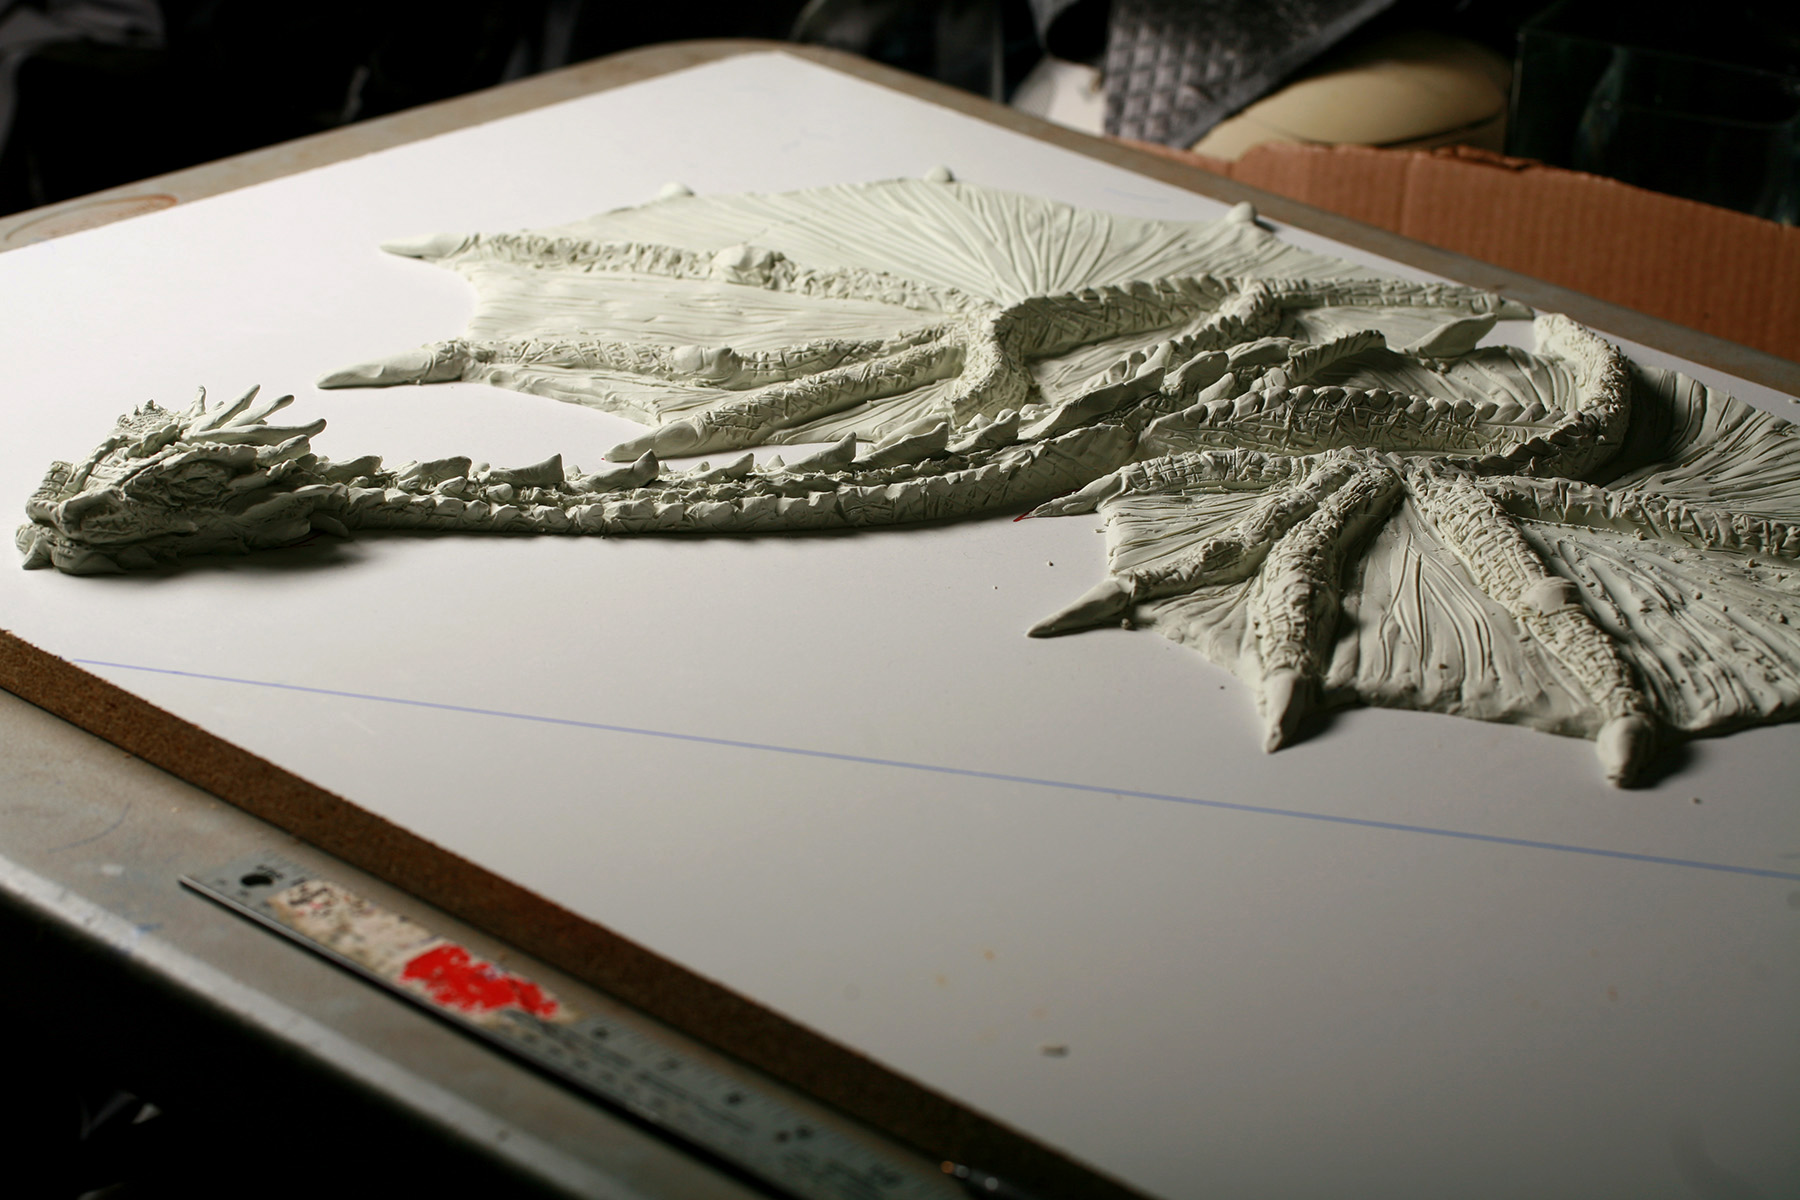 A full view of the clay sculpted Smaug dragon's full body.